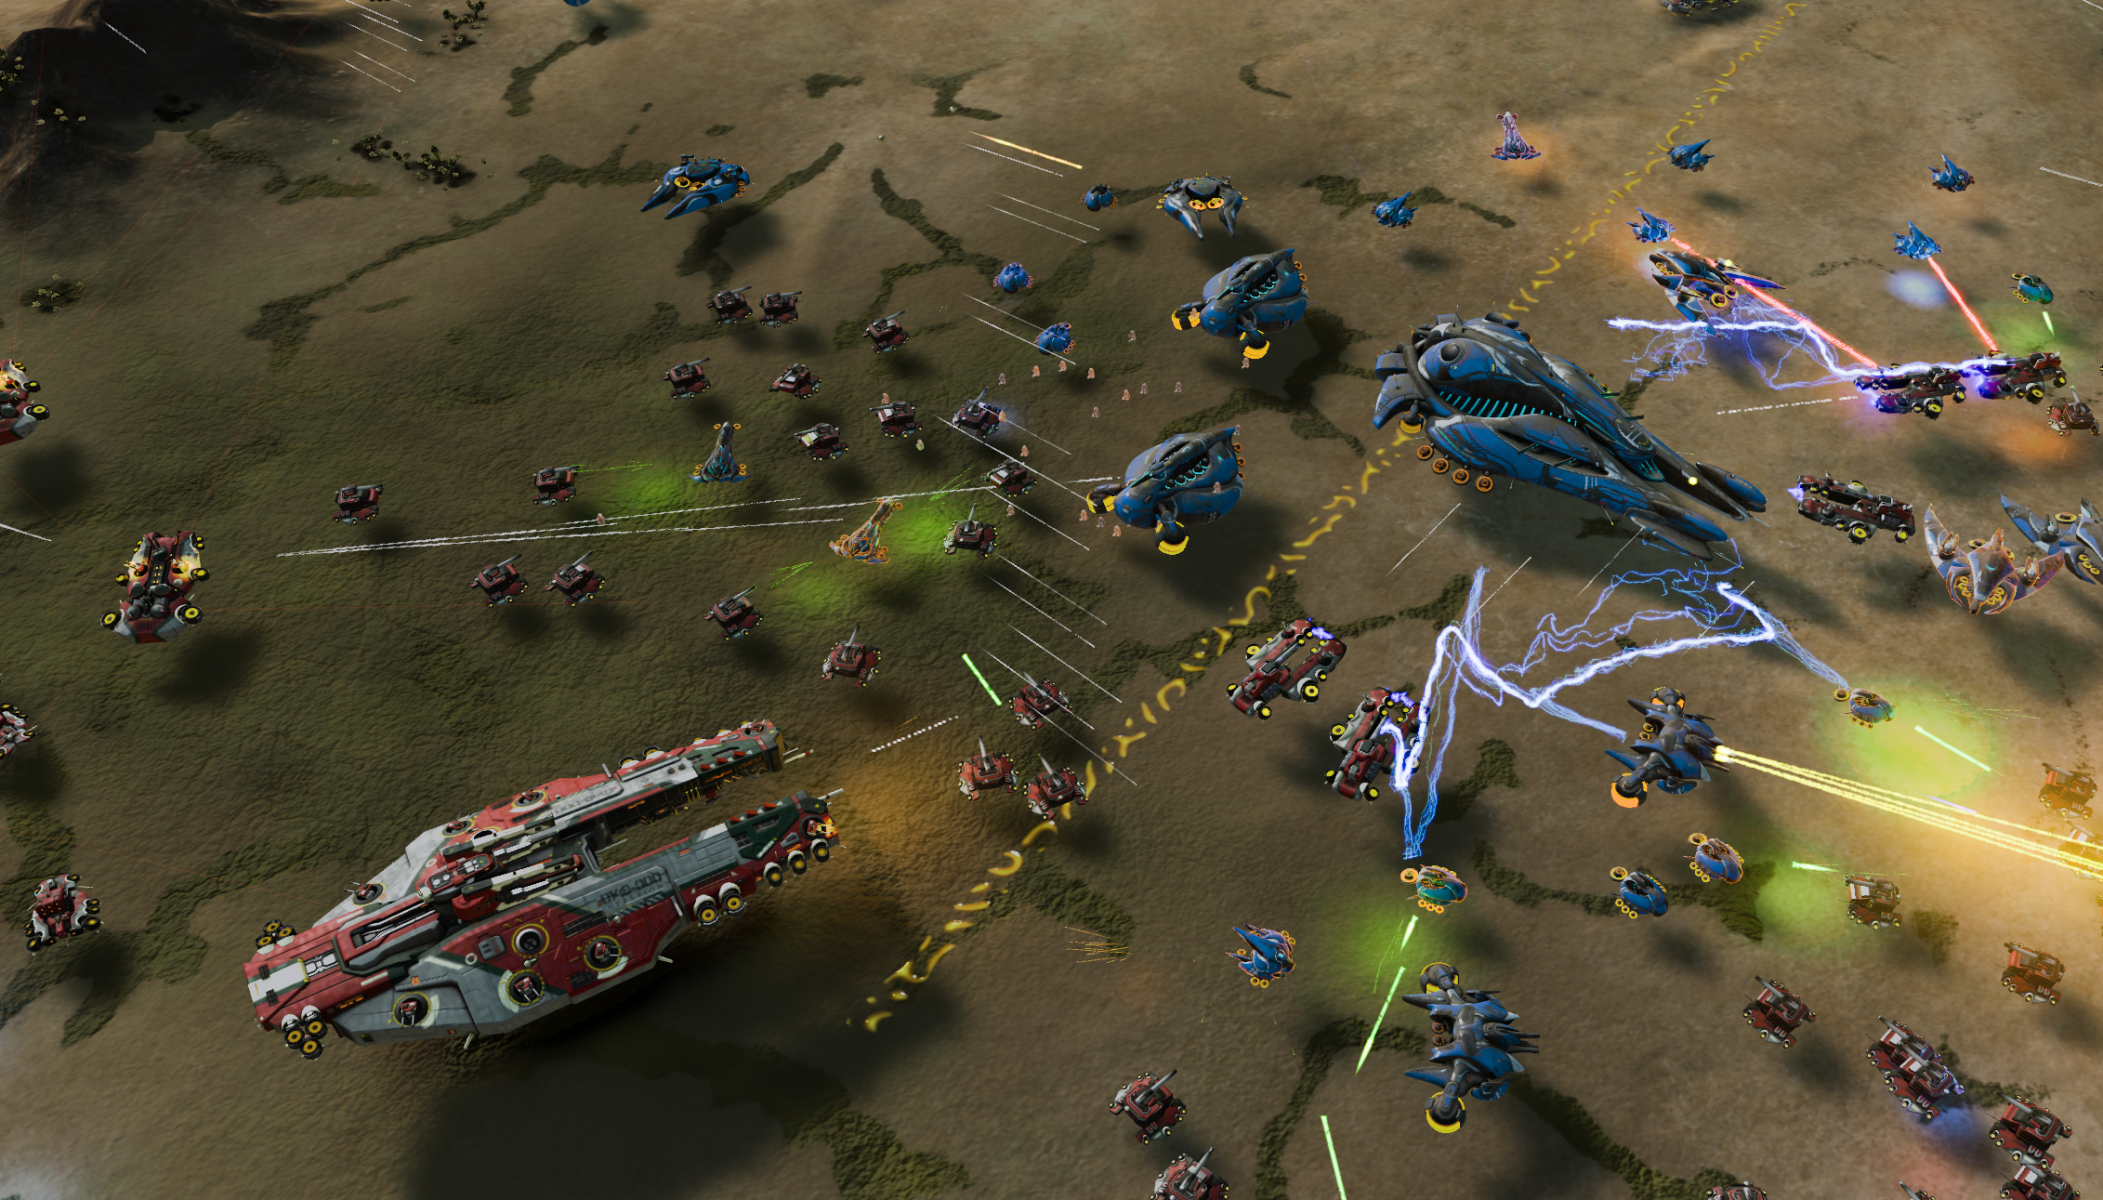 Ashes Of The Singularity Backgrounds, Compatible - PC, Mobile, Gadgets  2103x1200 px